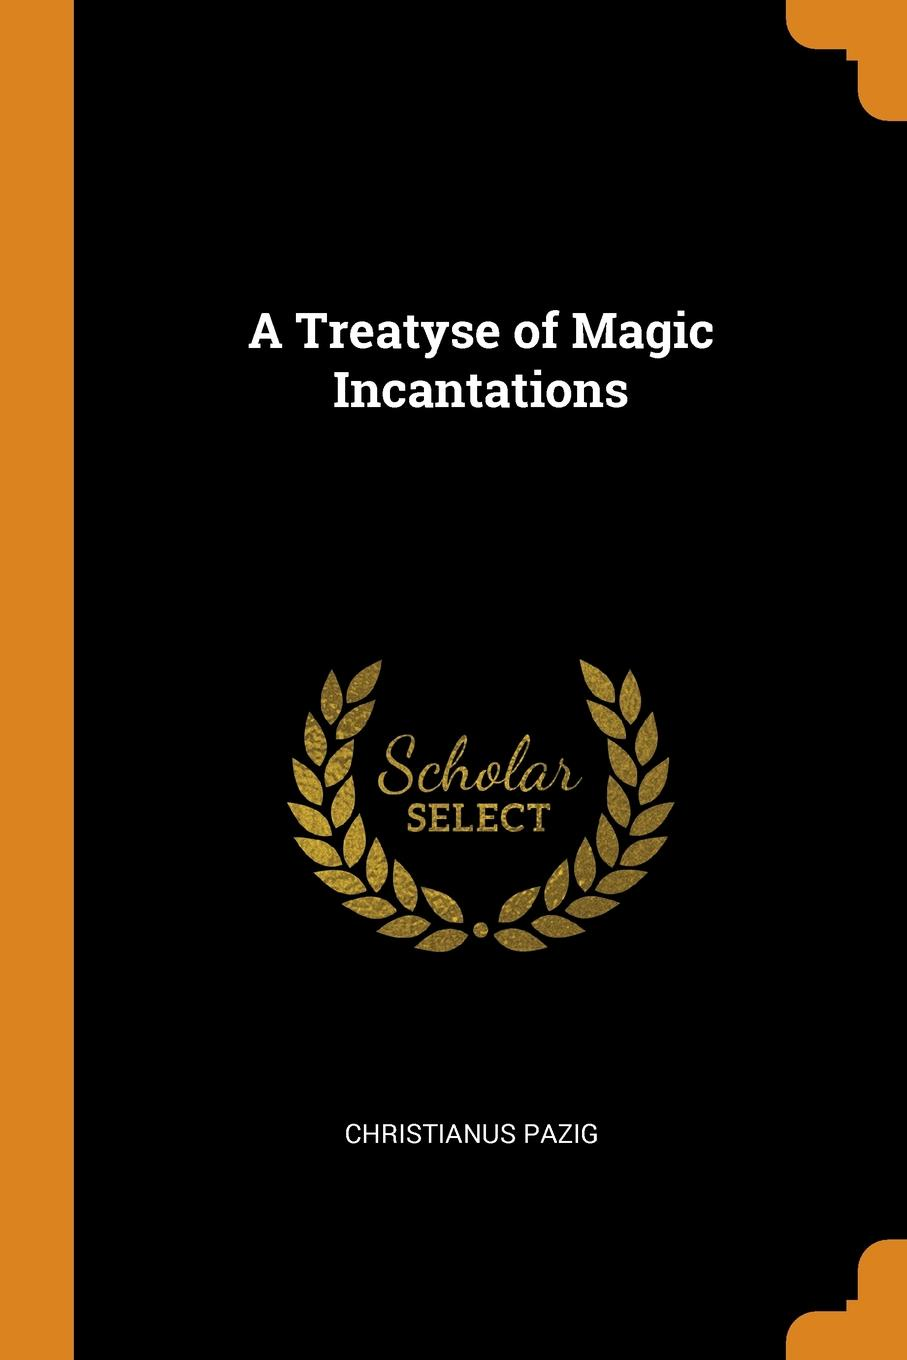 Christianus Pazig. A Treatyse of Magic Incantations